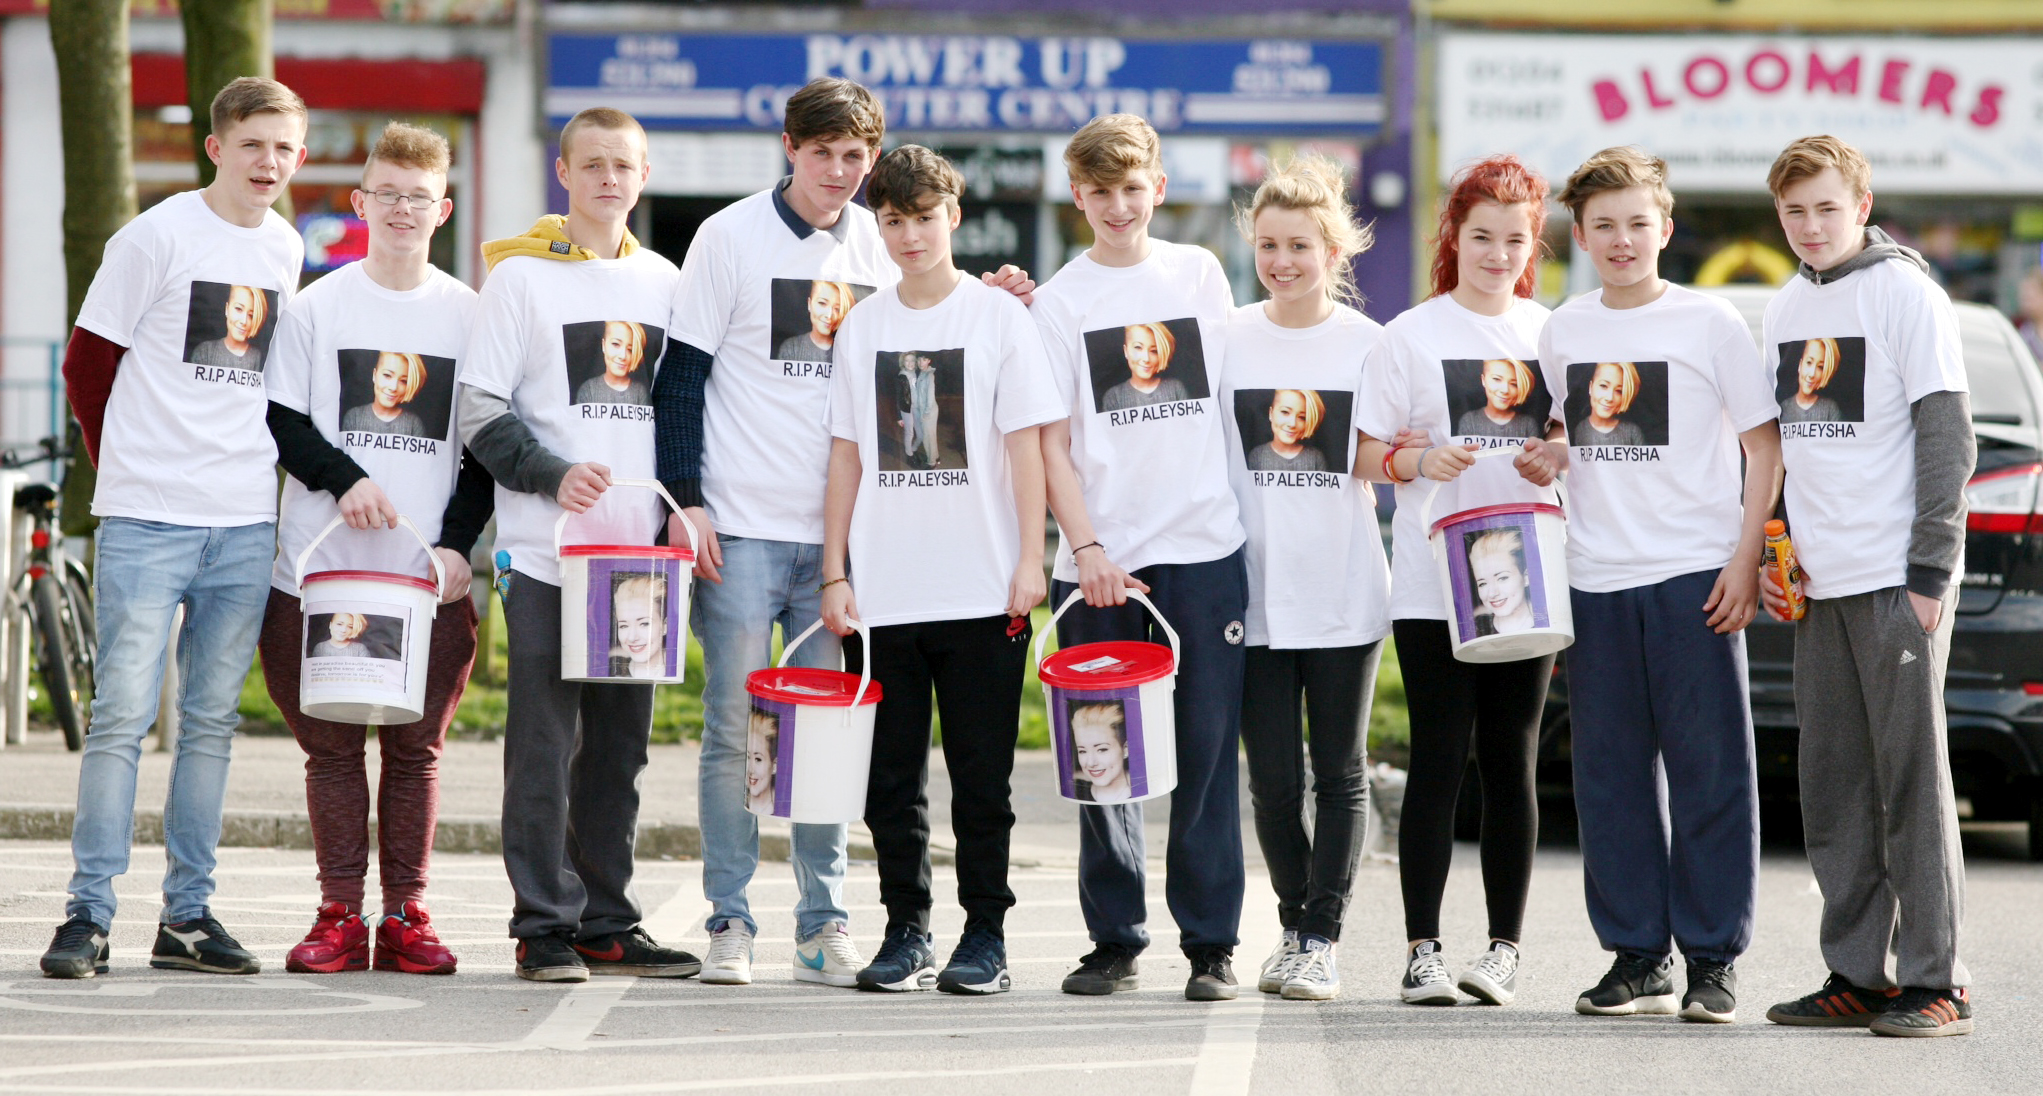 VIDEO: Tragic Aleysha Rothwell's friends hold second memory walk to raise money for headstone